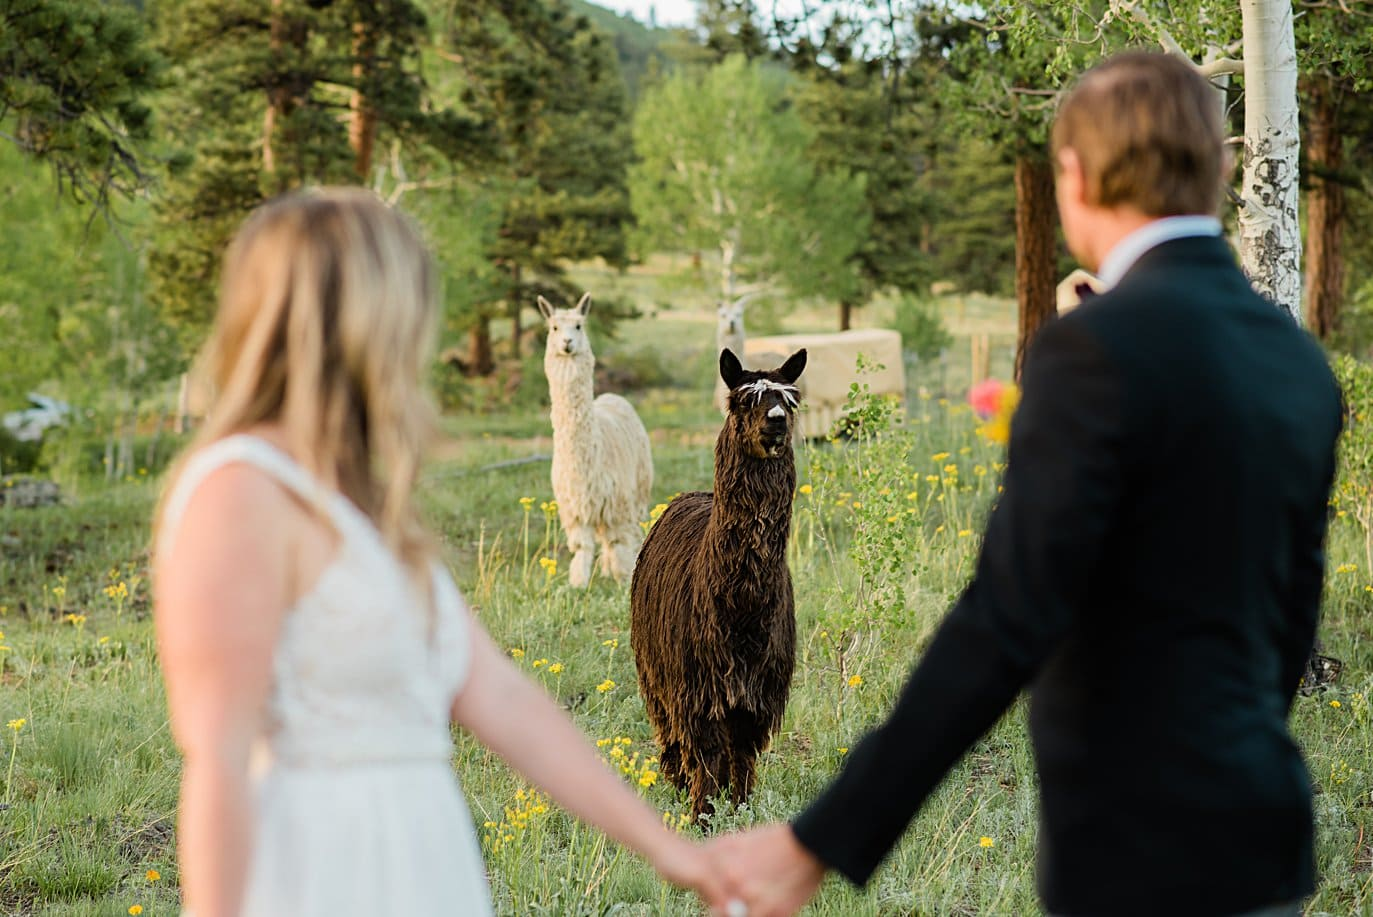 bride and groom and alpacas on wedding day at Golden elopement by Golden elopement photographer Jennie Crate